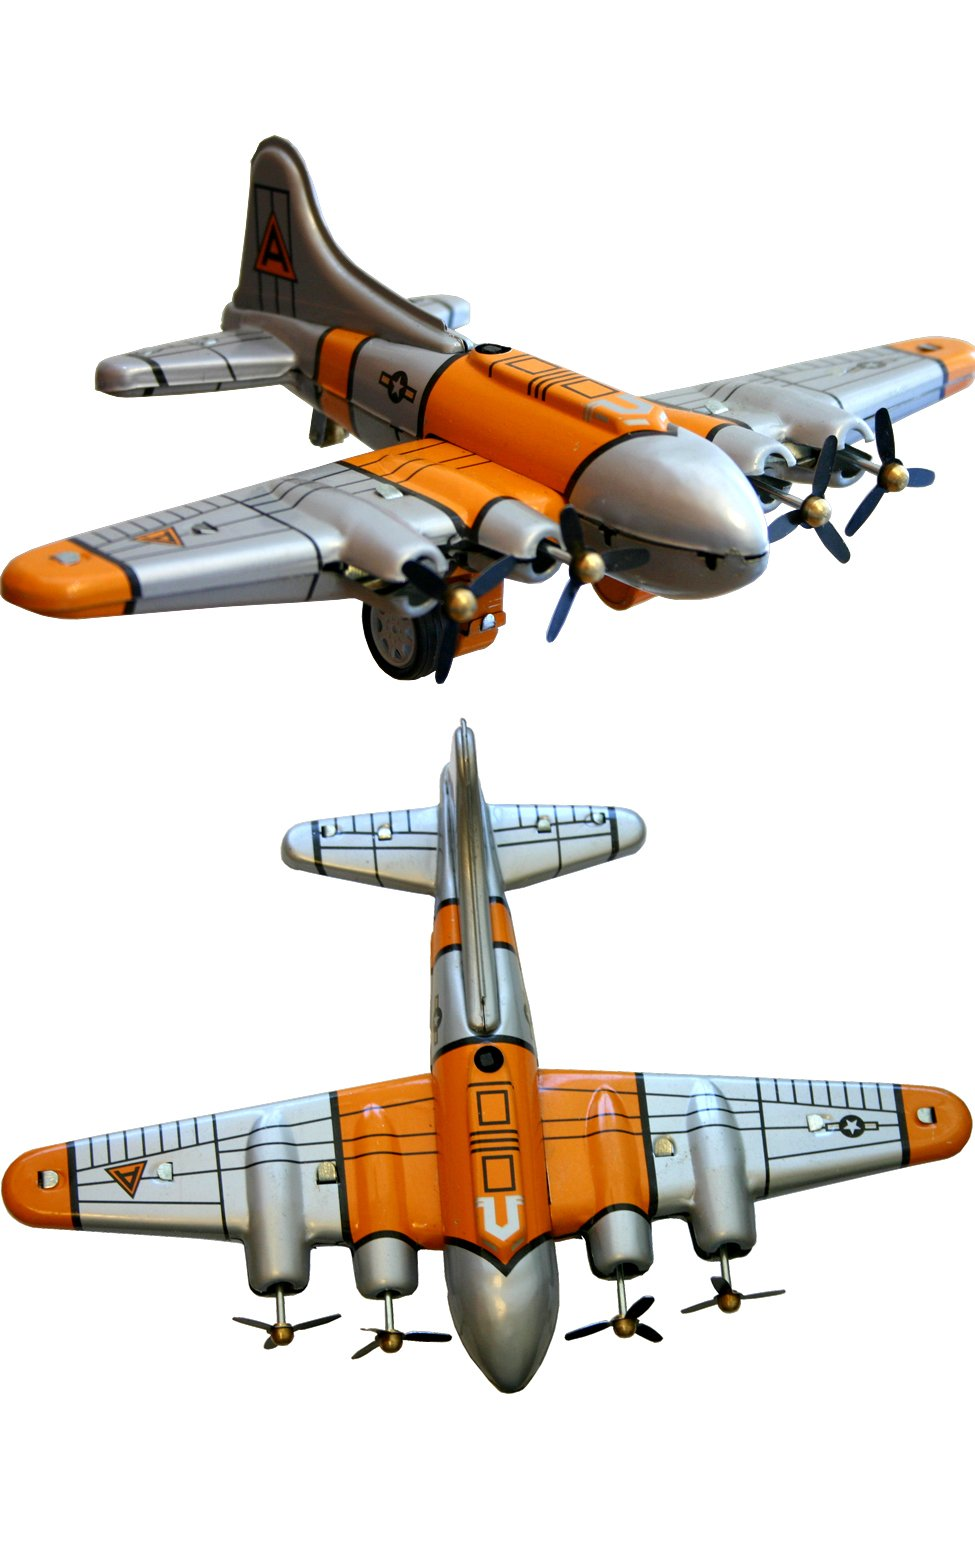 Shan MS489 Collectible Tin Toy - Plane